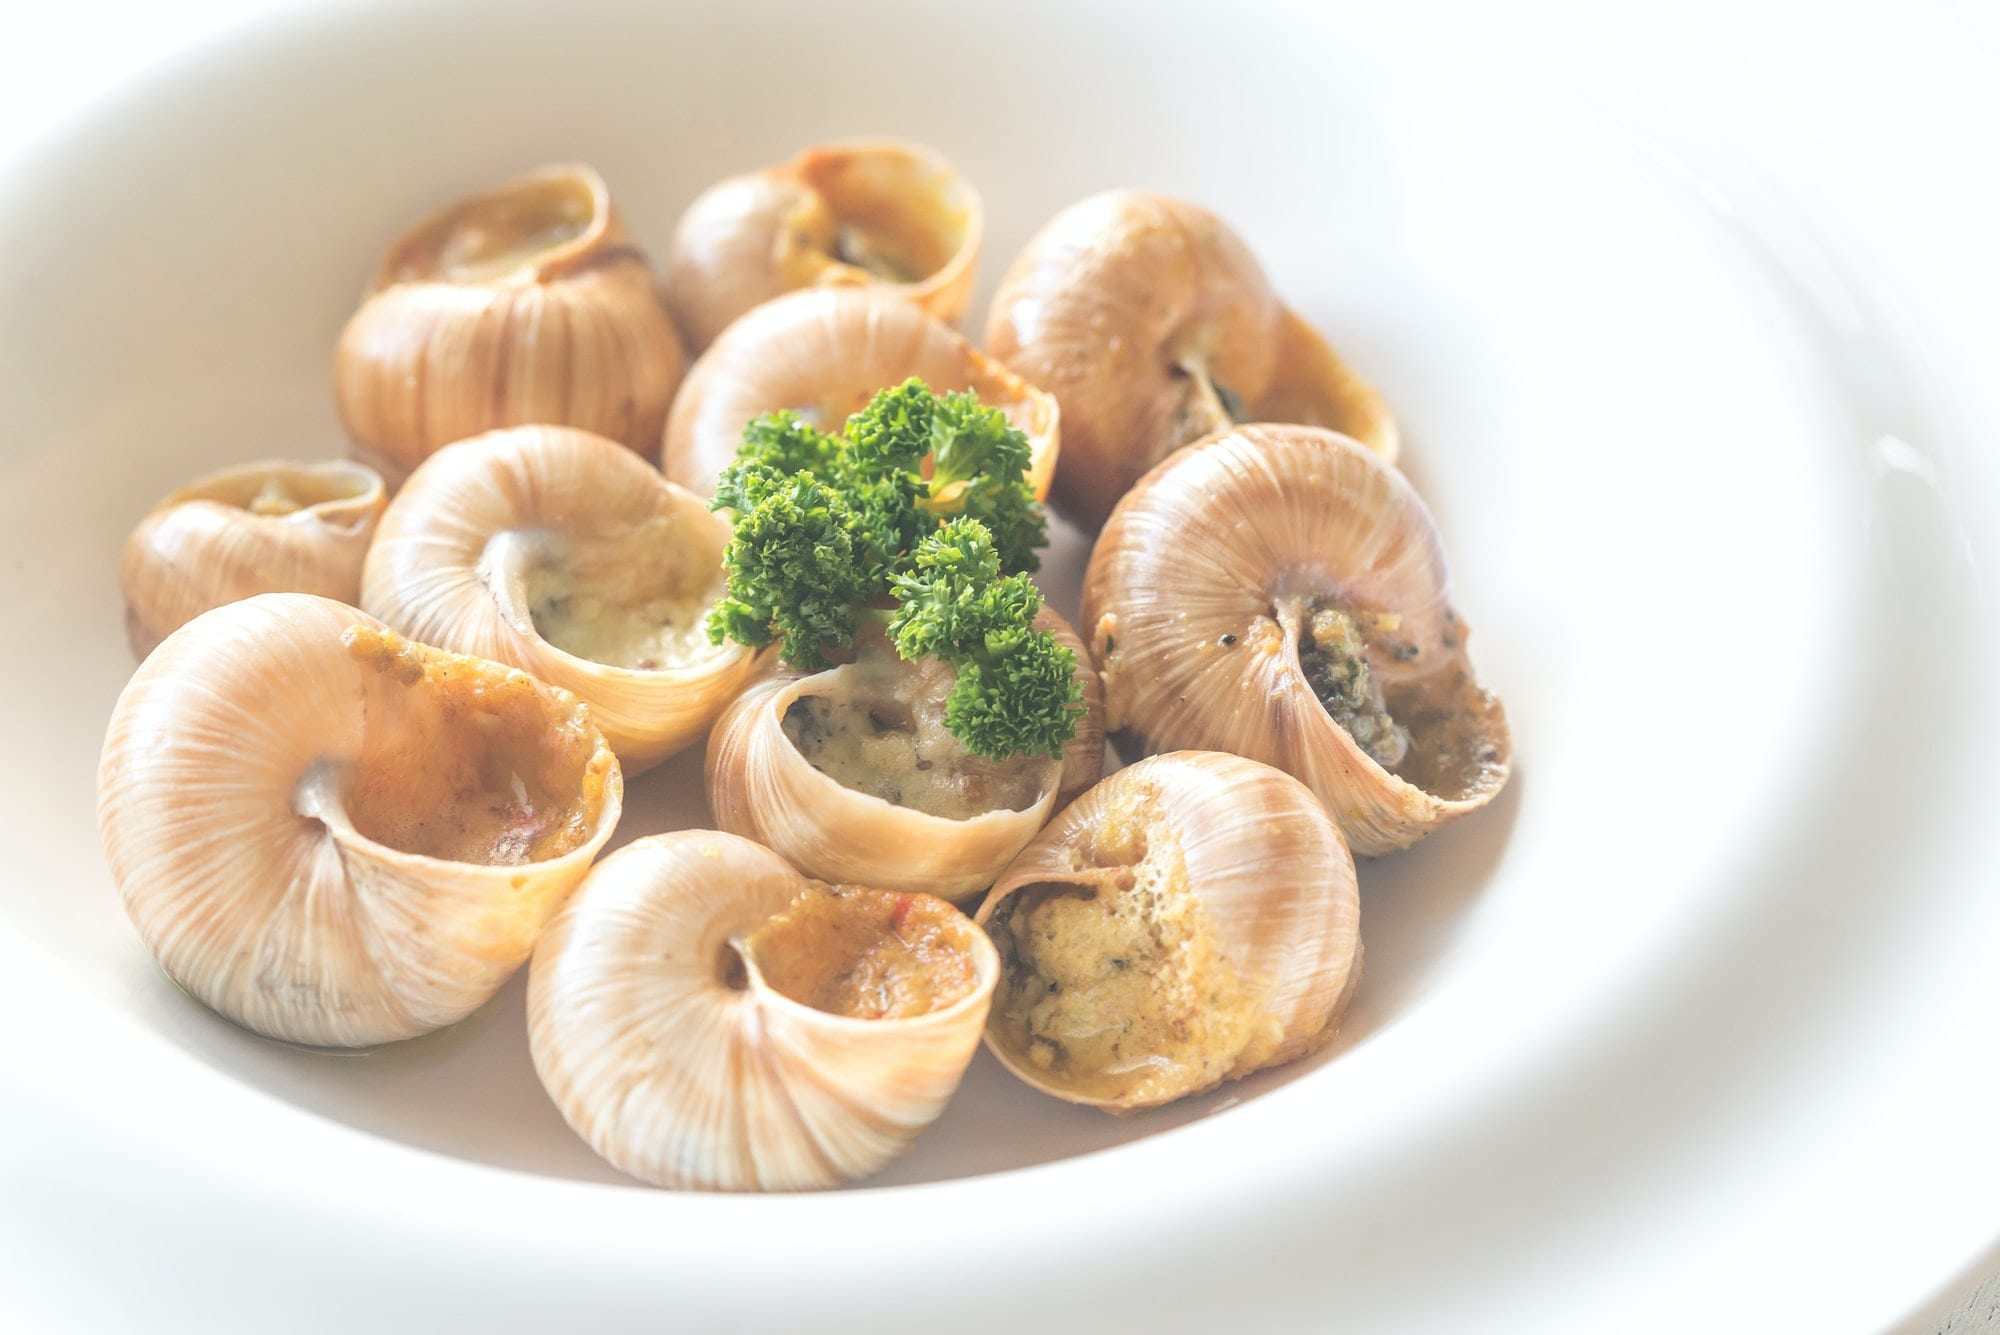 Portion of cooked snails